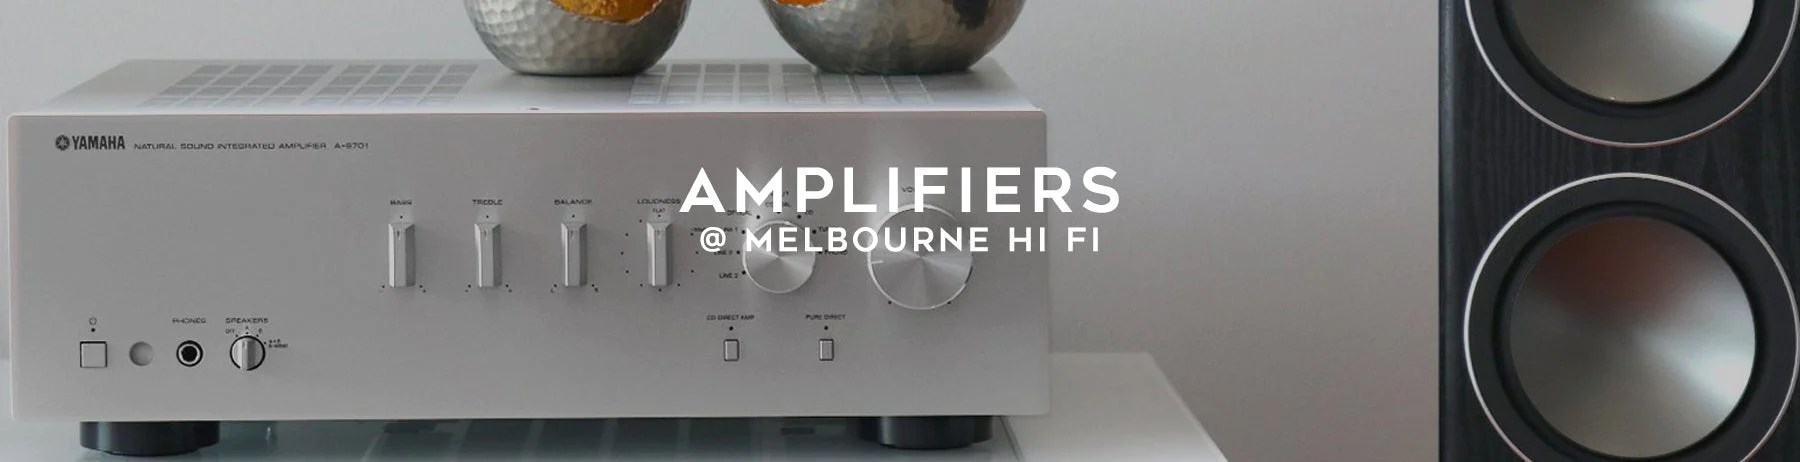 Hifi Shop 24 Amplifiers Melbourne Hi Fi Audio Specialists